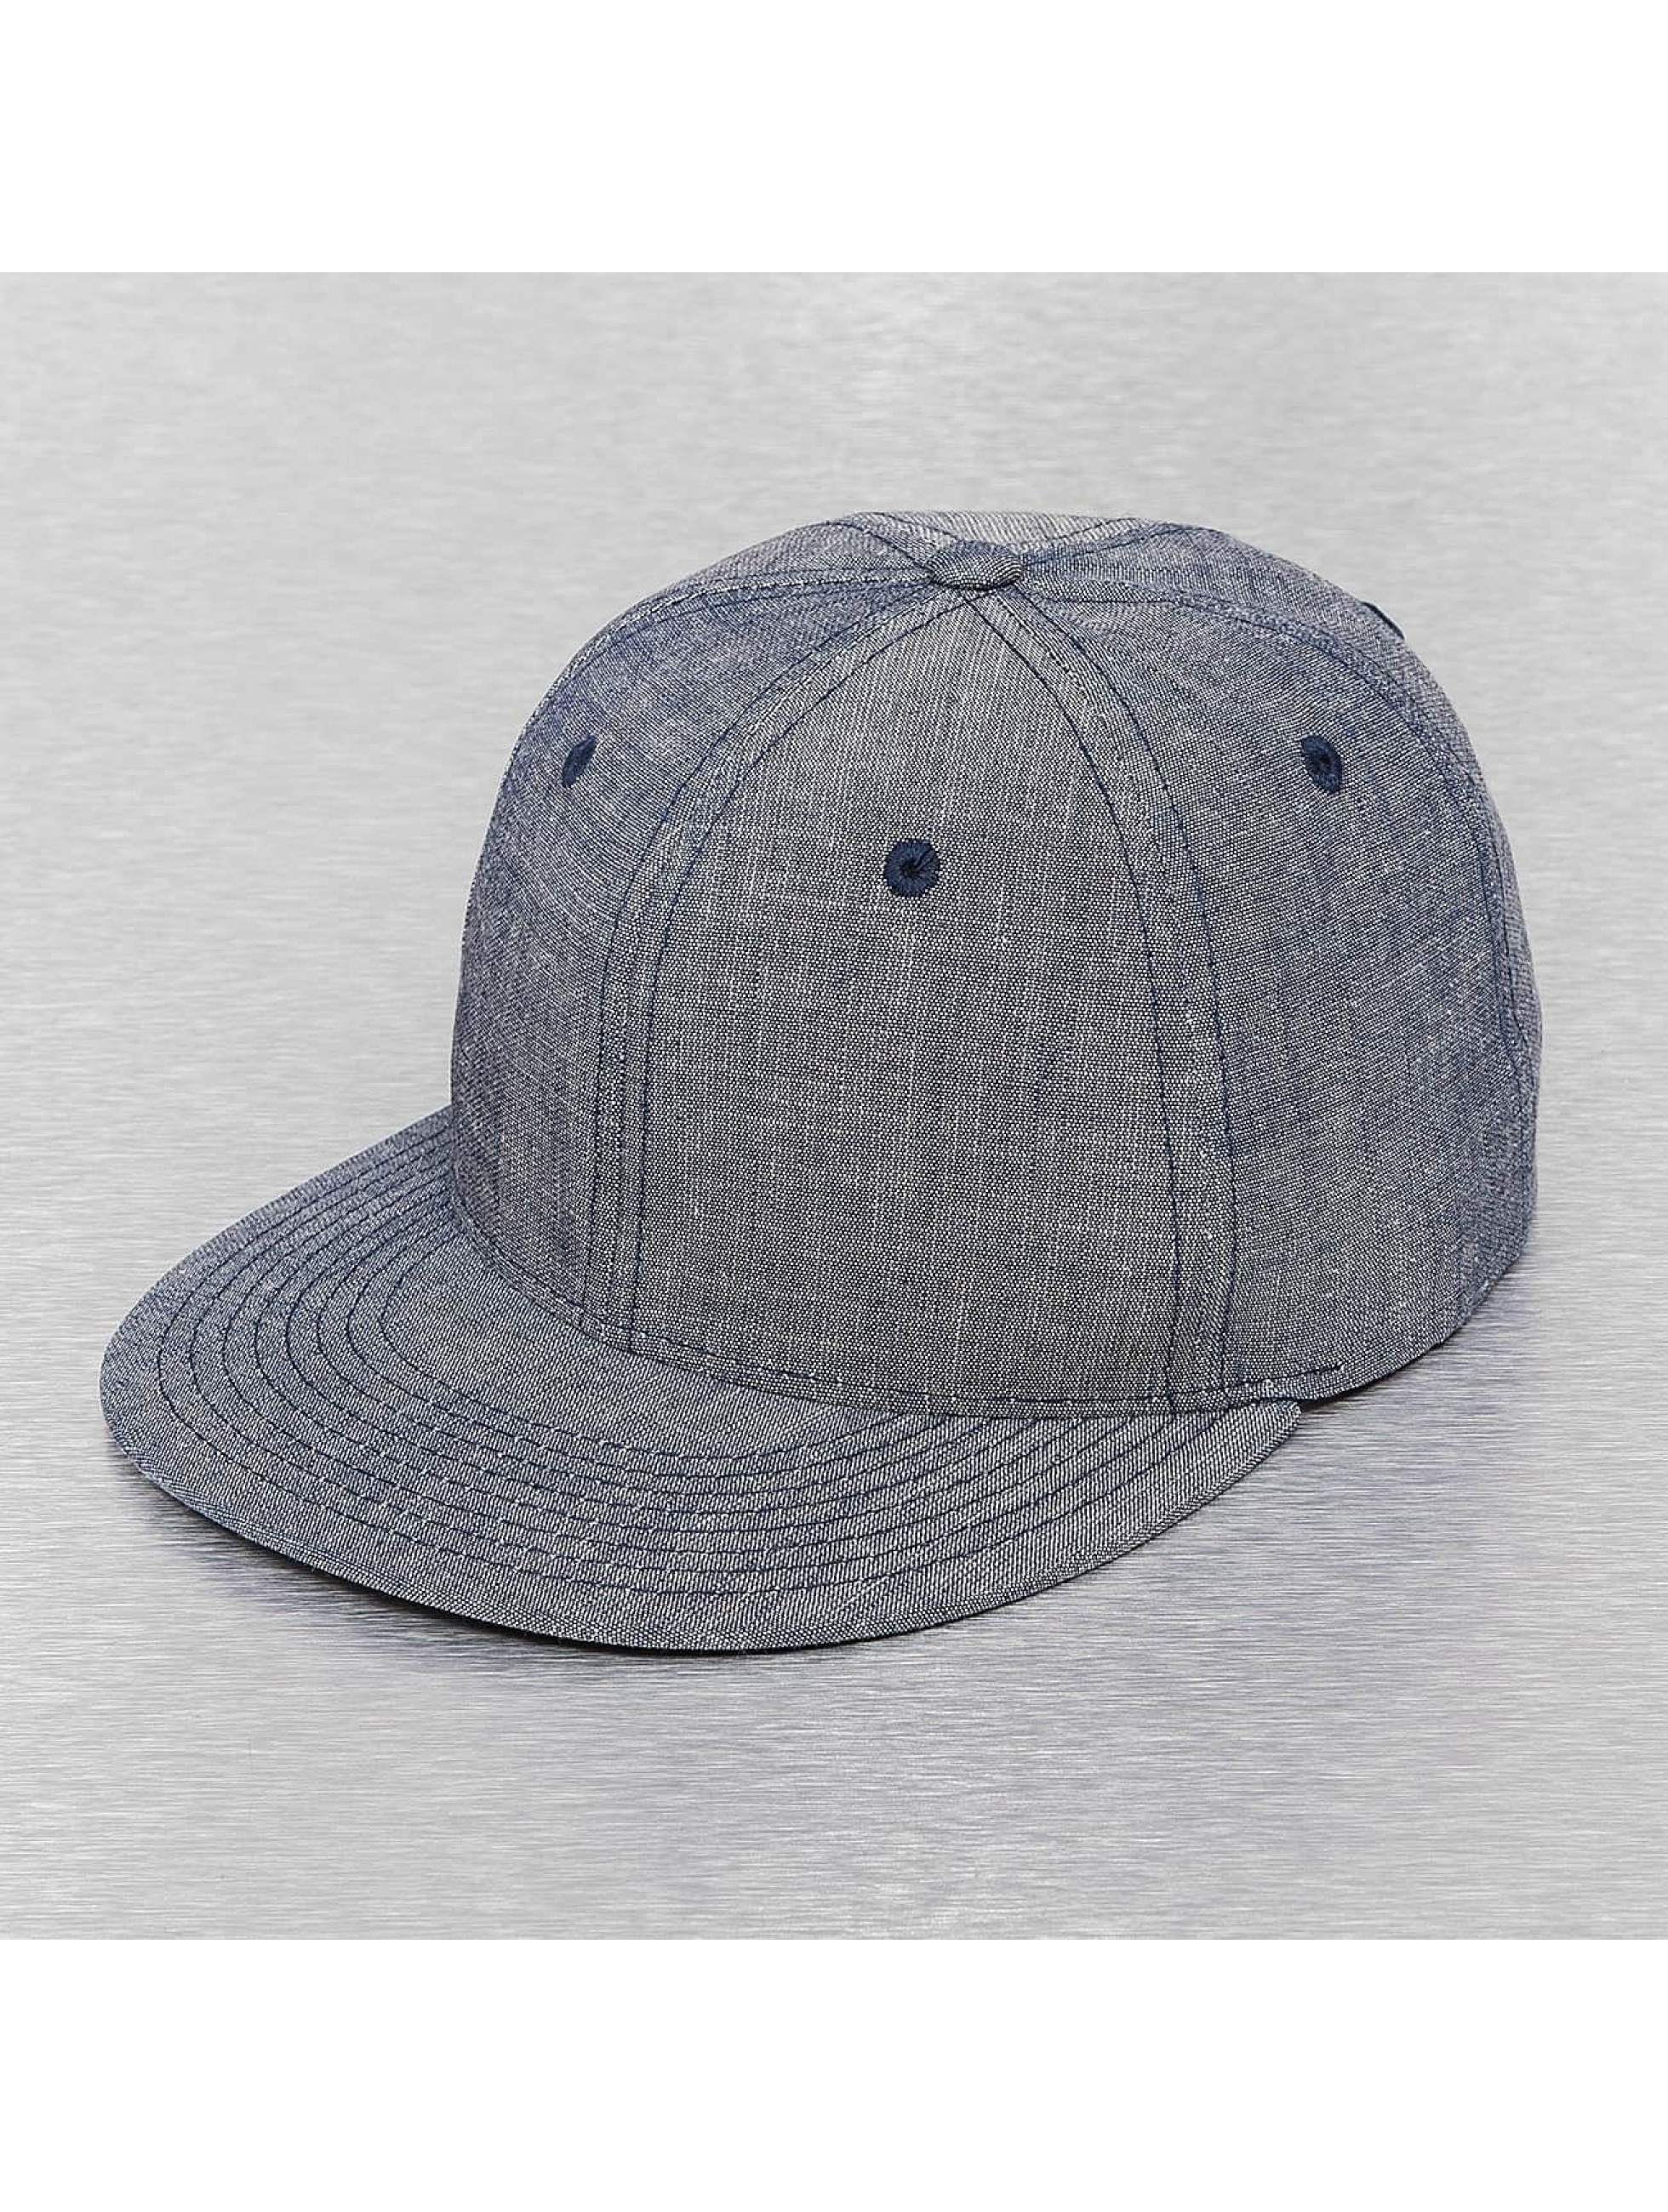 Cap Crony Snapback Cap Washed Denim blau